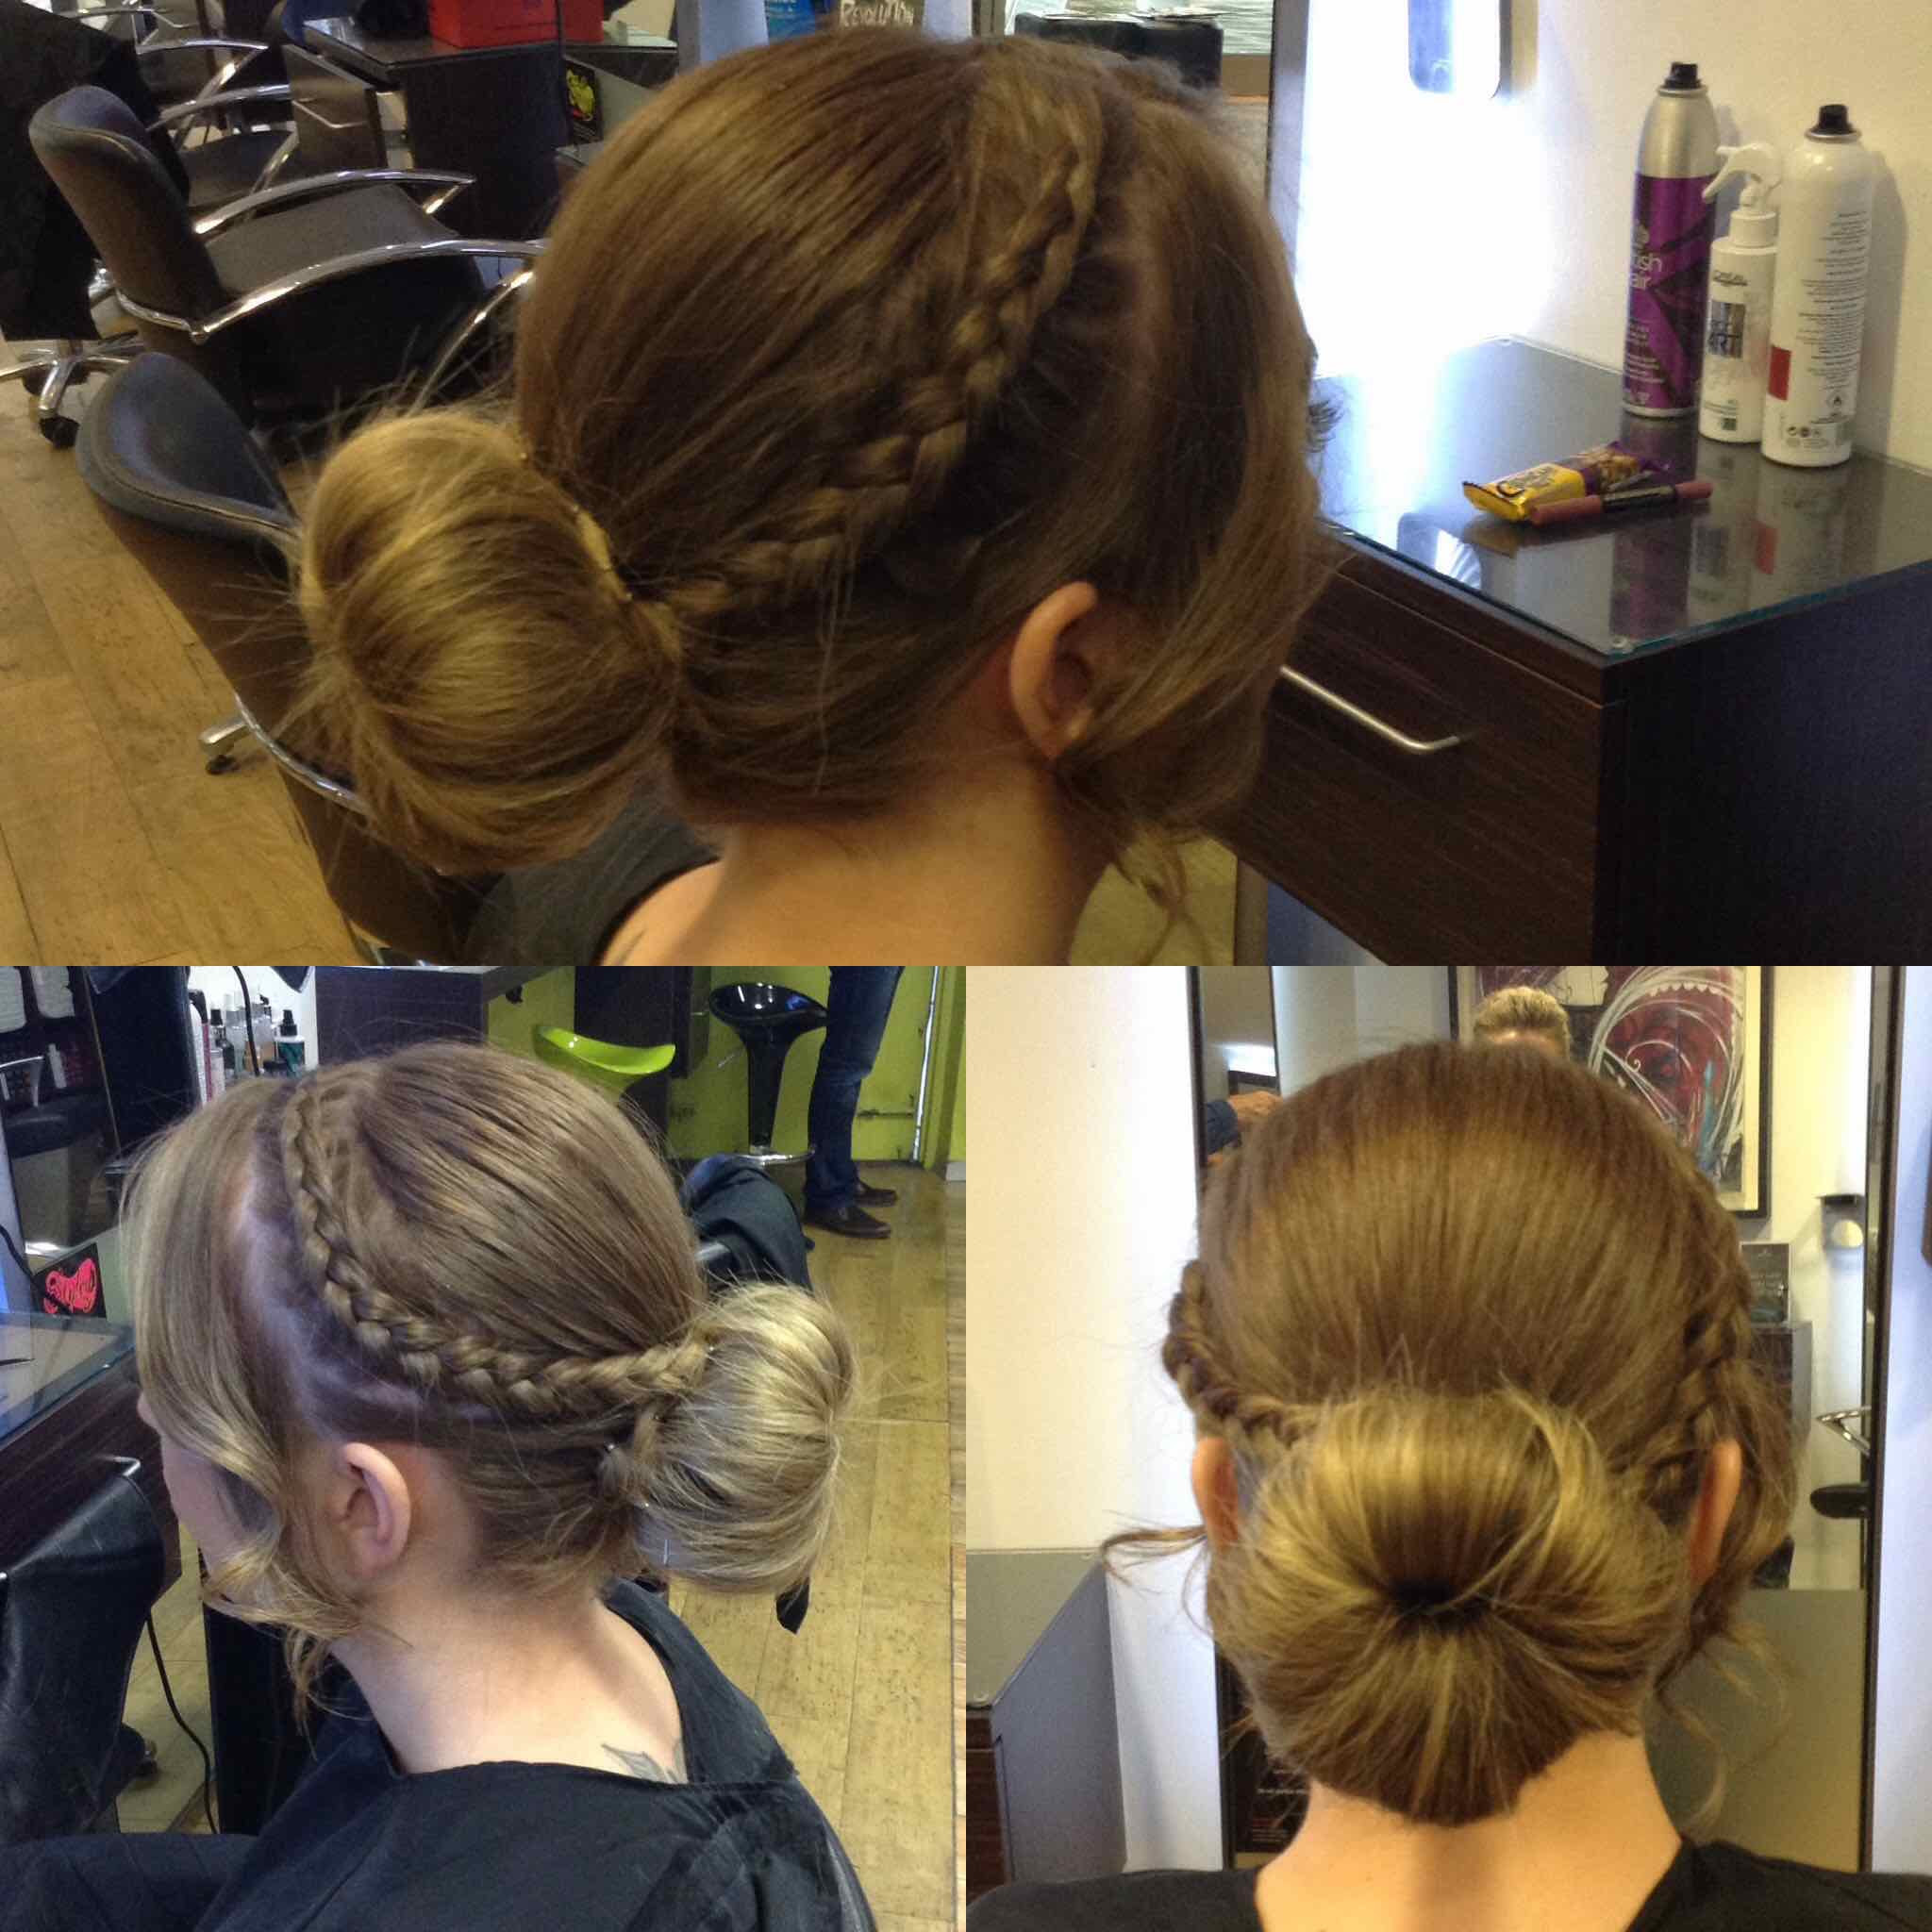 hair up ideas for wedding guest - george's blog